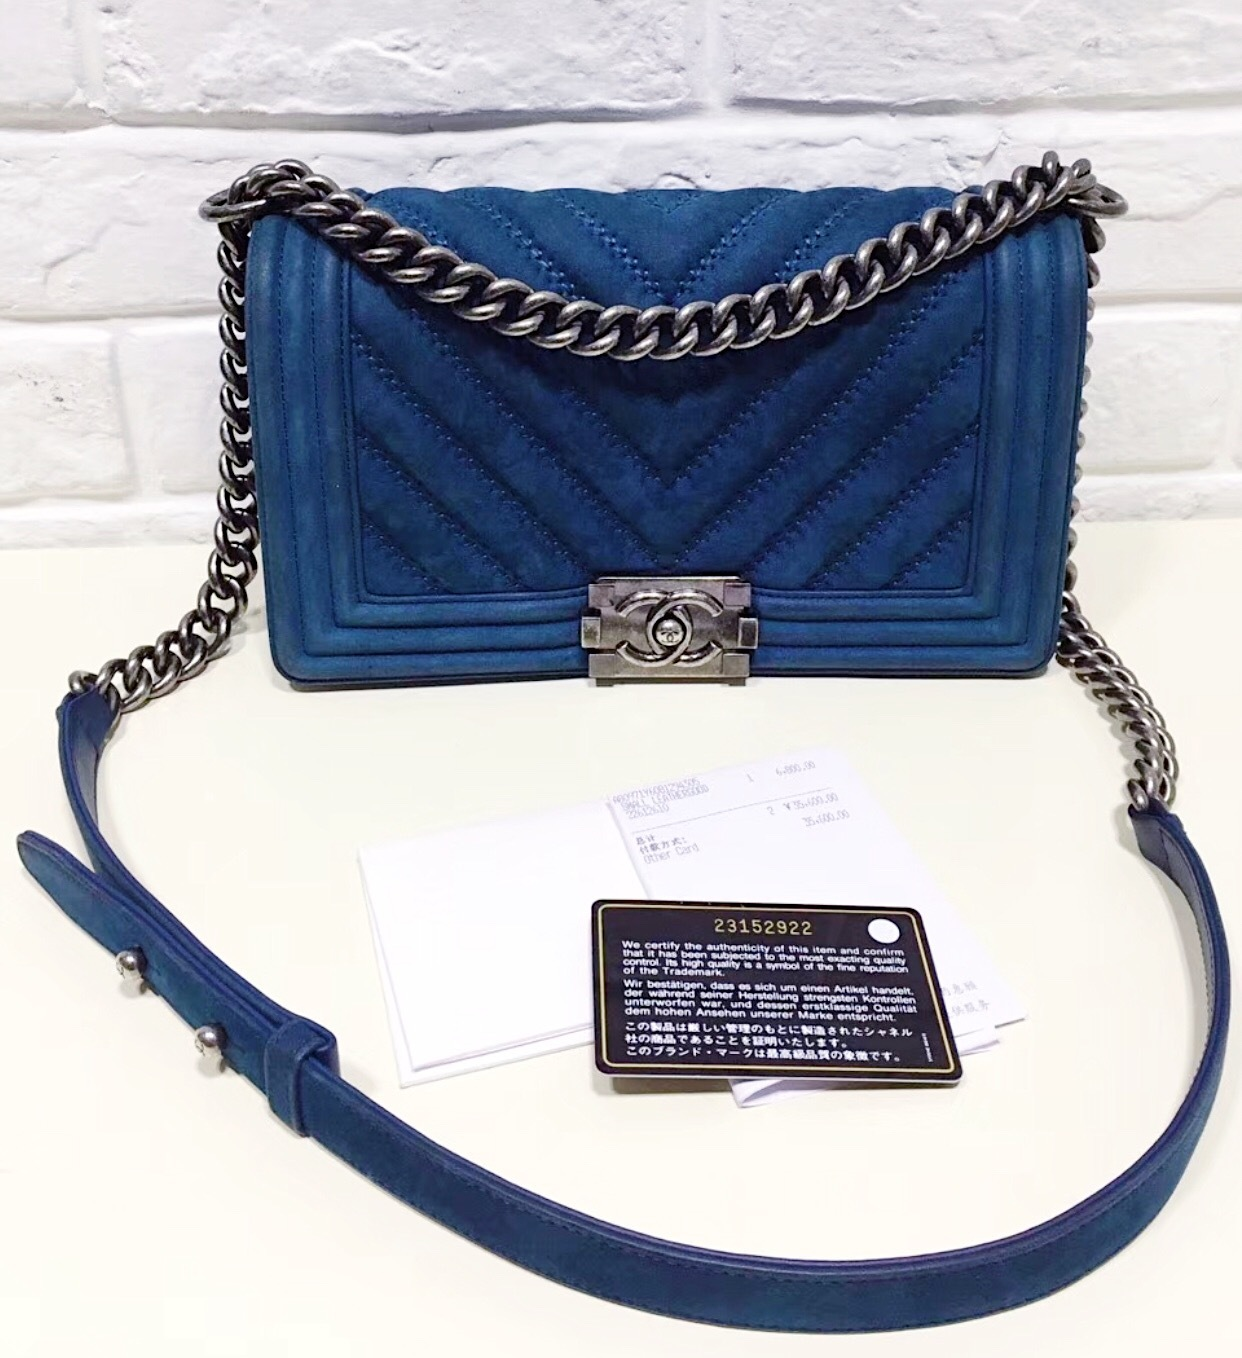 912f3b022837 SALE* AUTHENTIC CHANEL BLUE CHEVRON QUILTED SUEDE MEDIUM BOY FLAP ...